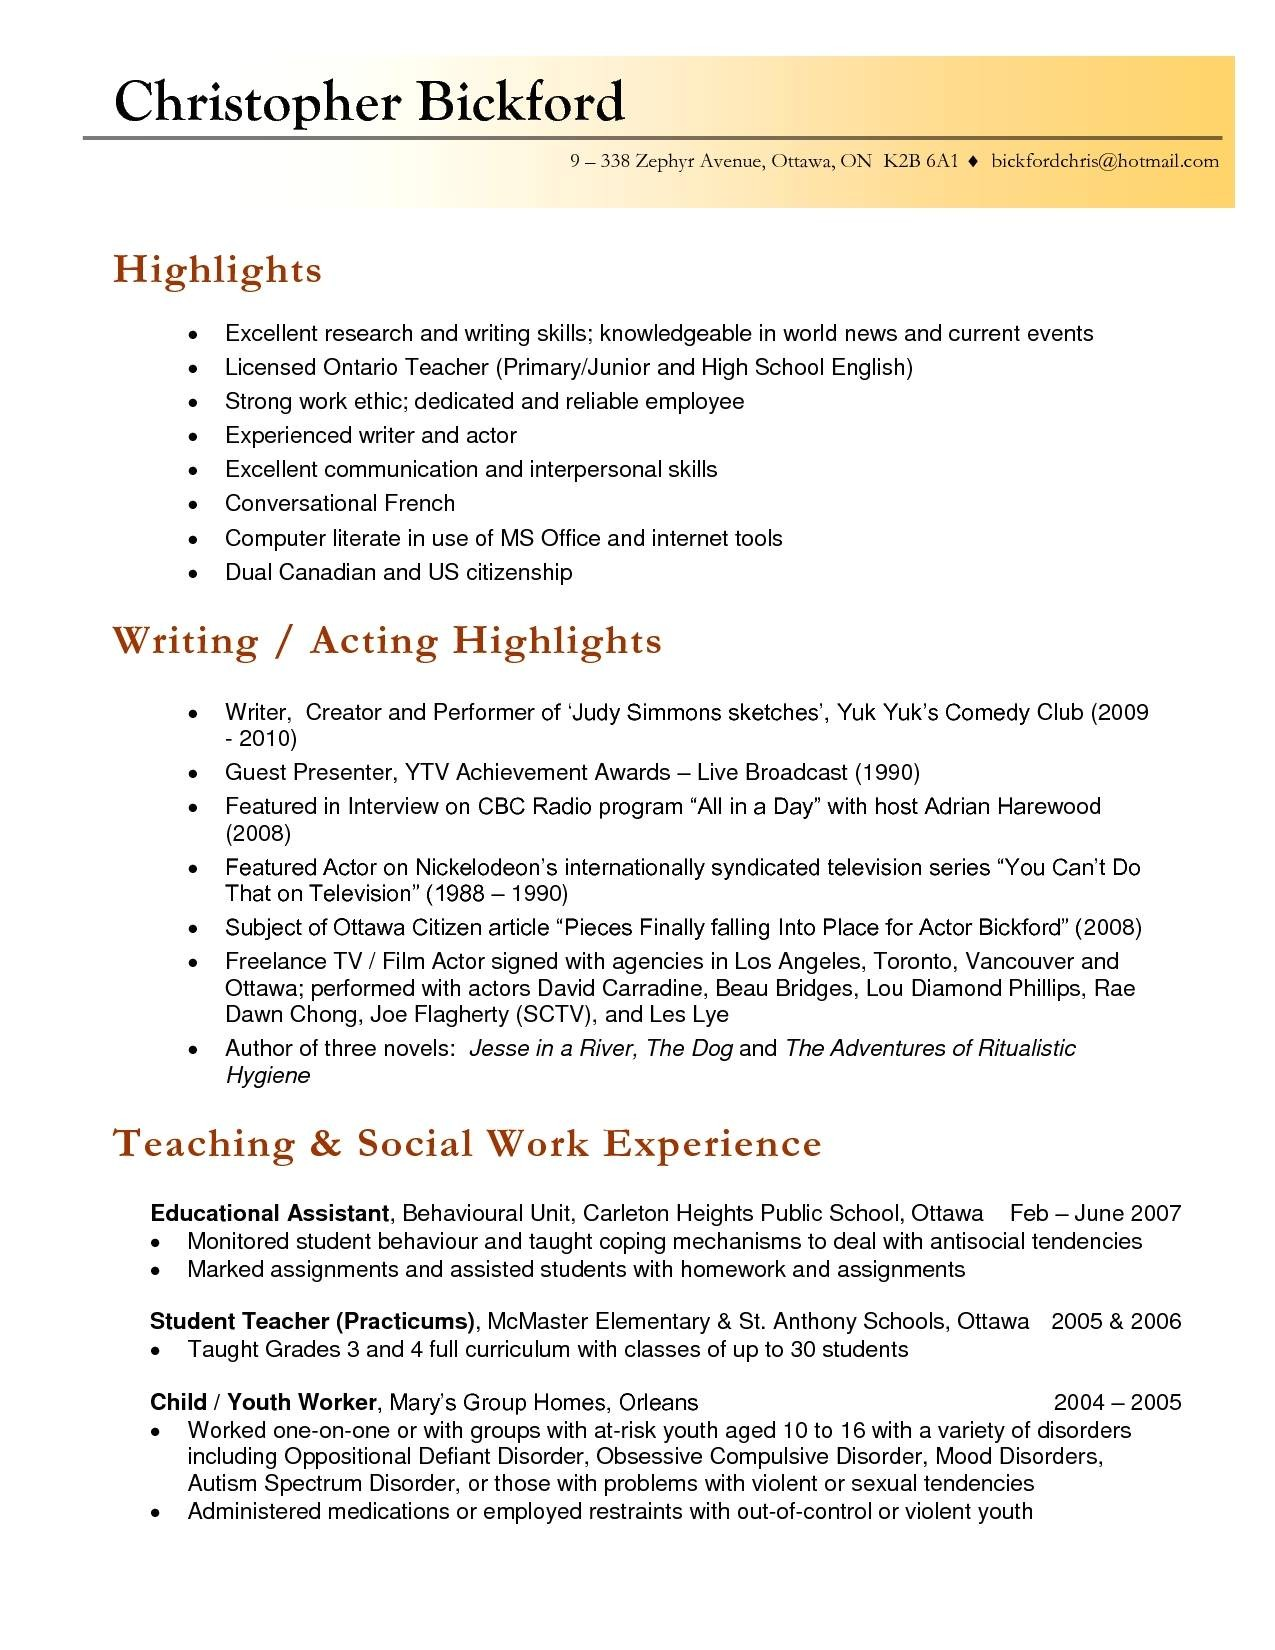 resume samples for faculty positions